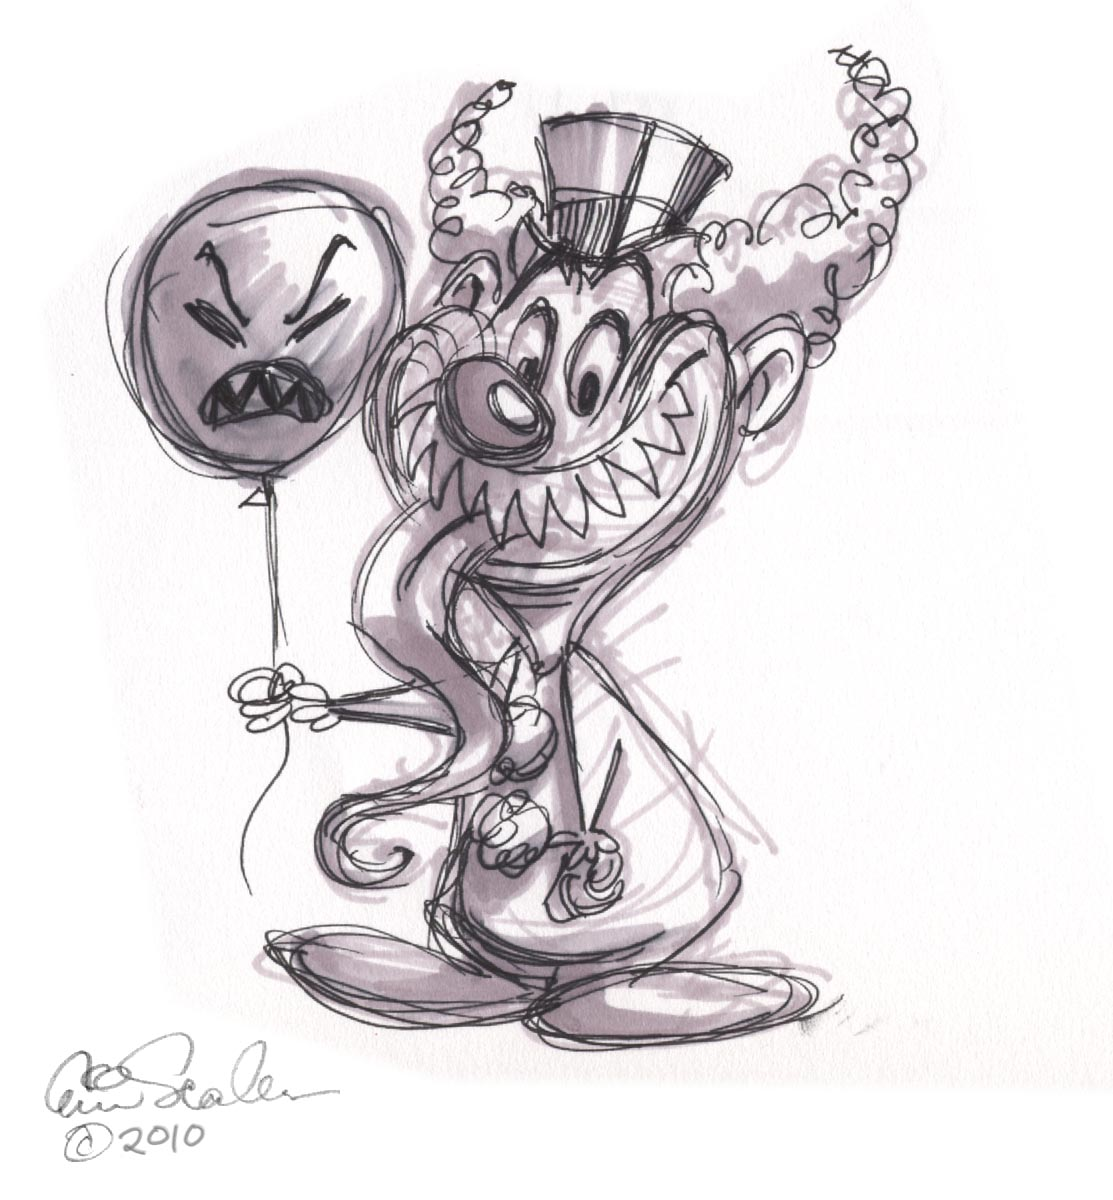 Free Easy Way To Draw Scary Clowns Download Free Clip Art Free Clip Art On Clipart Library